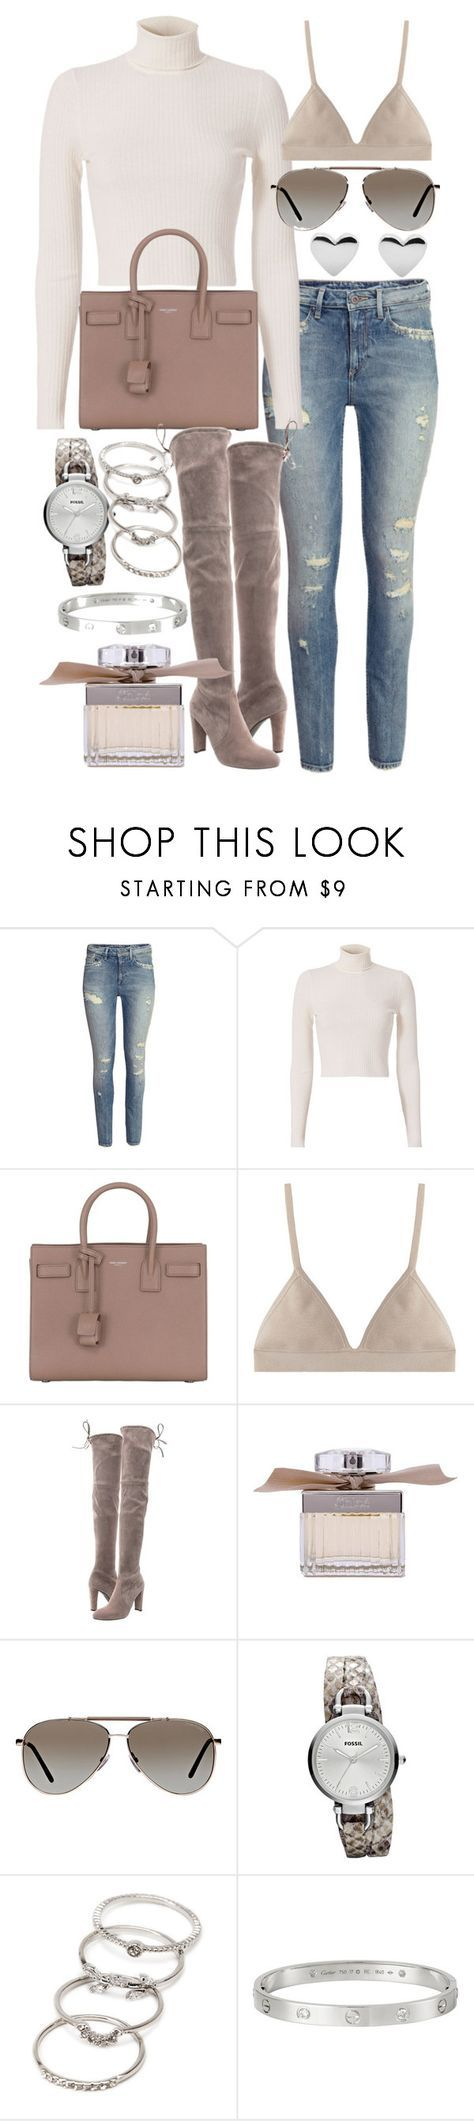 """""""Untitled #20482"""" by florencia95 ❤ liked on Polyvore featuring H&M, A.L.C., Yves Saint Laurent, Proenza Schouler, Stuart Weitzman, Chloé, Tom Ford, FOSSIL, Forever 21 and Cartier"""